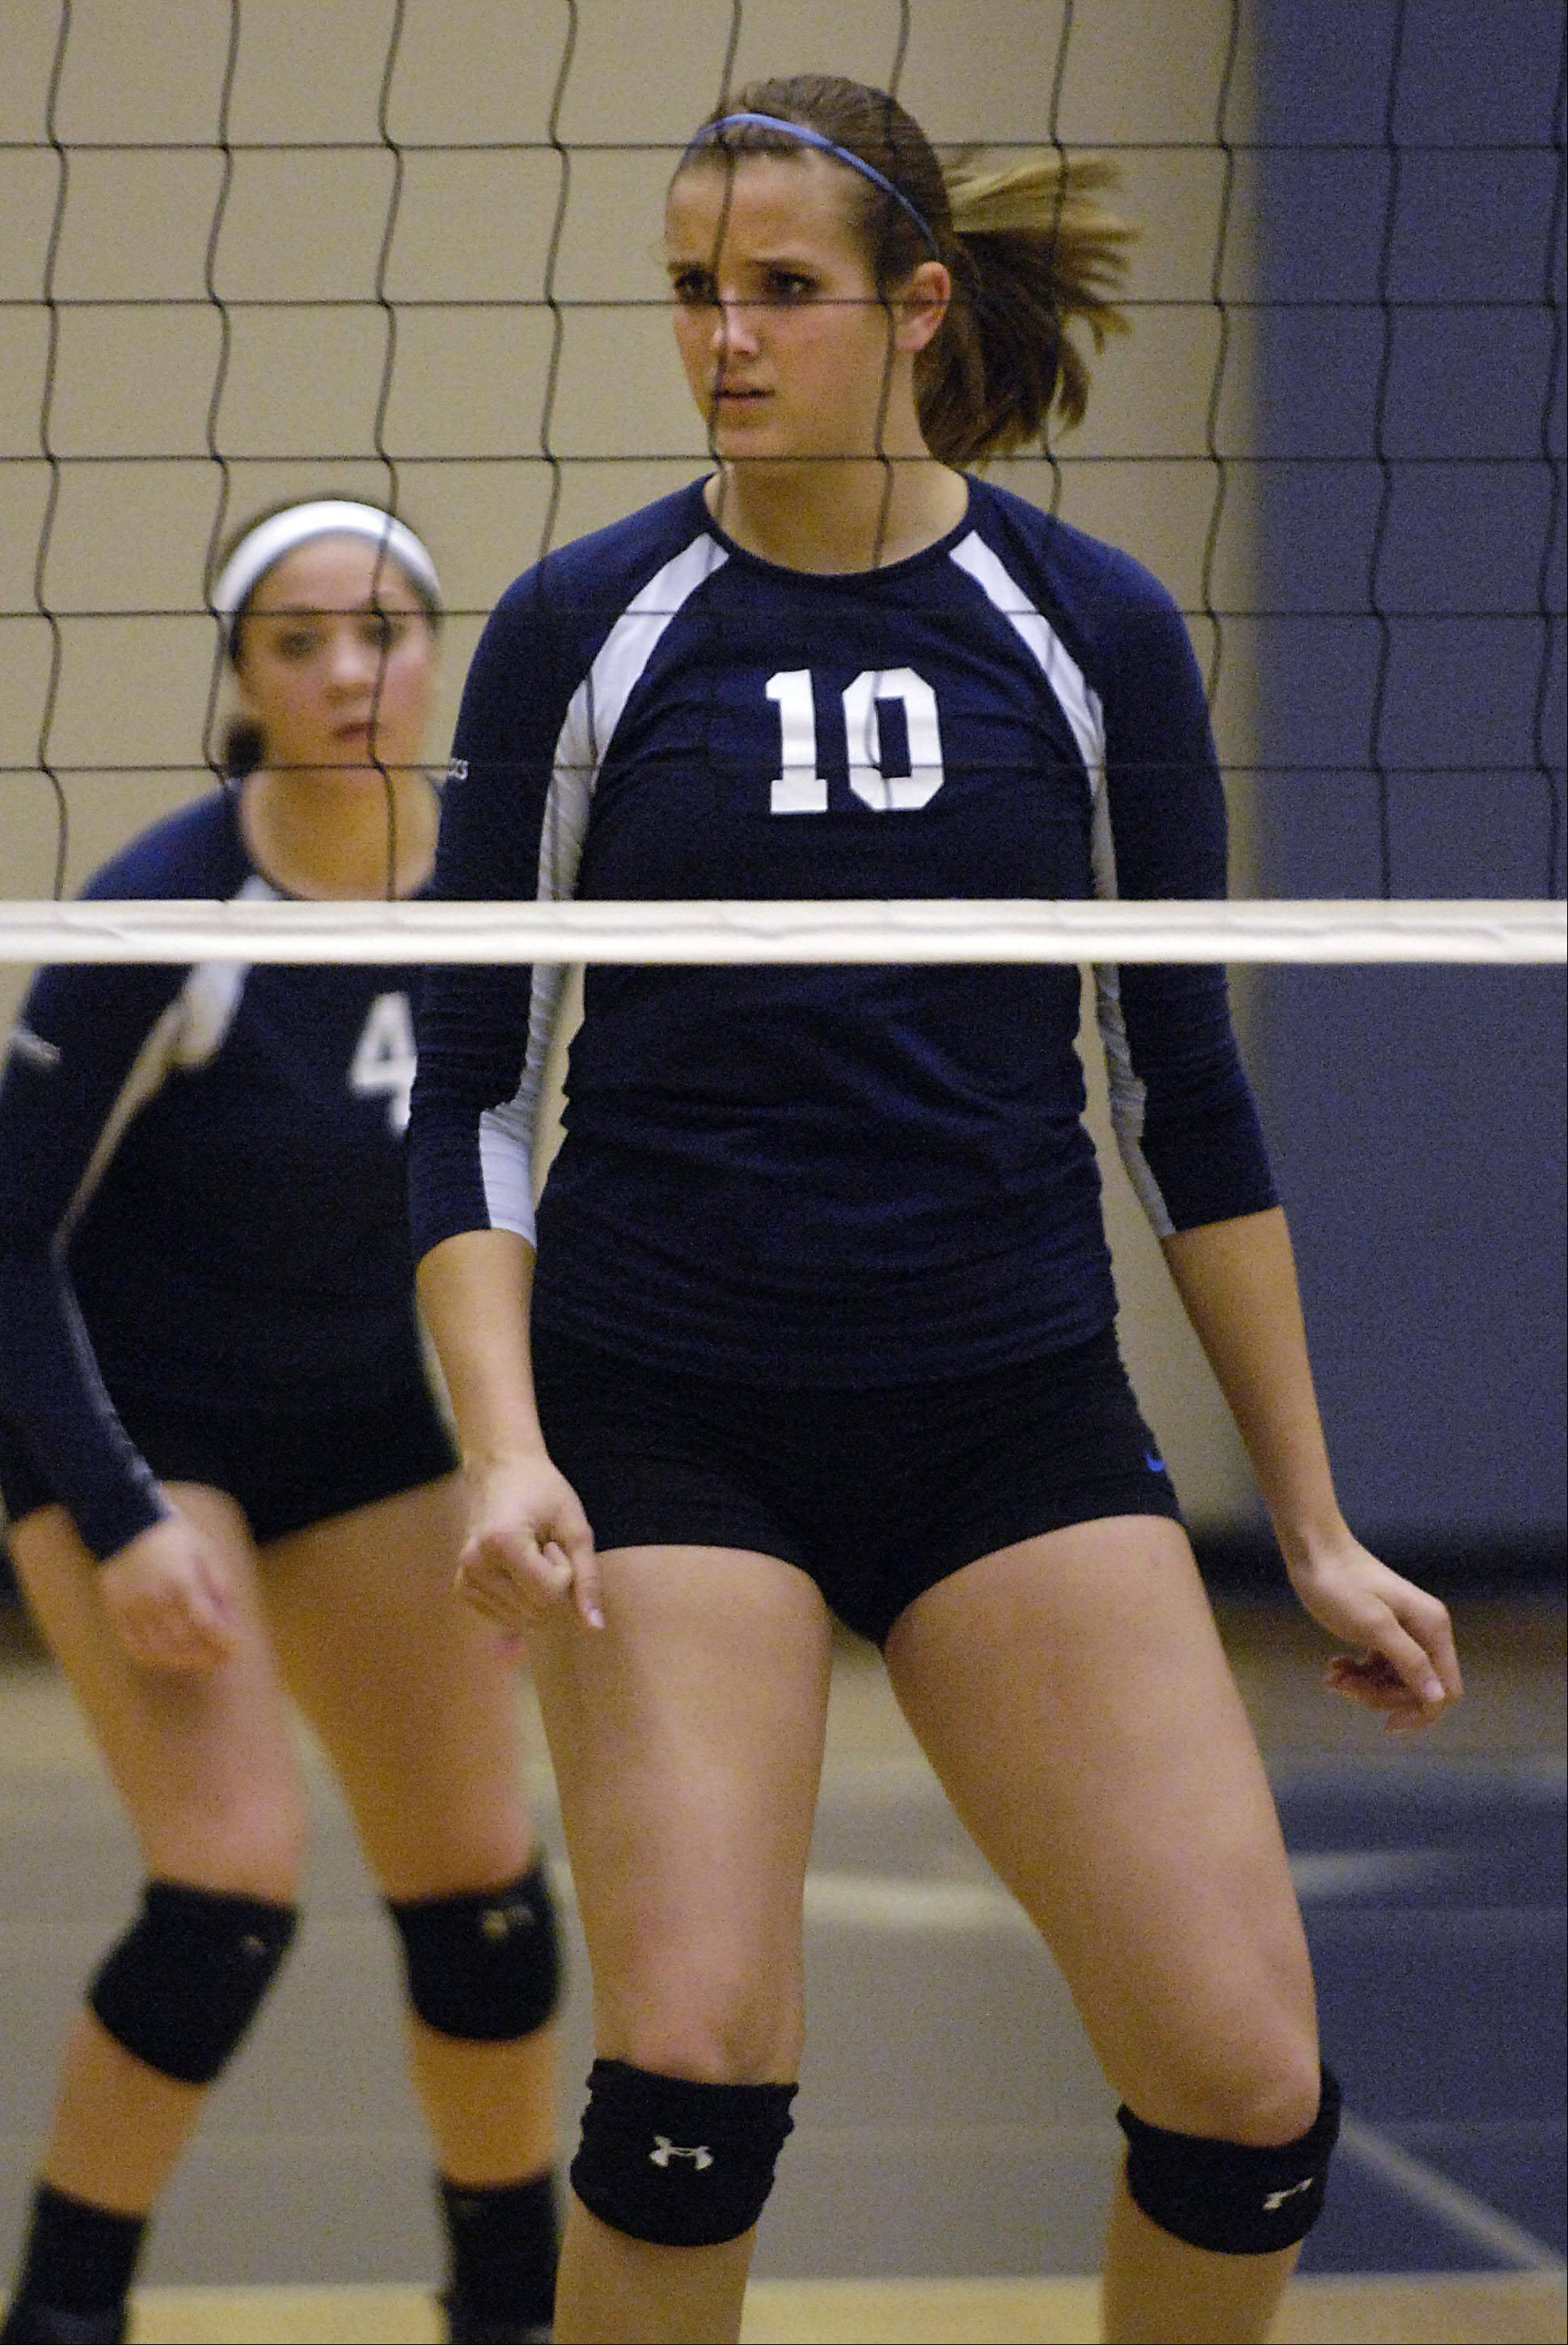 Harvest Christian Academy's Sydney Doby concentrates on the action Tuesday during the sectional match in Elgin.